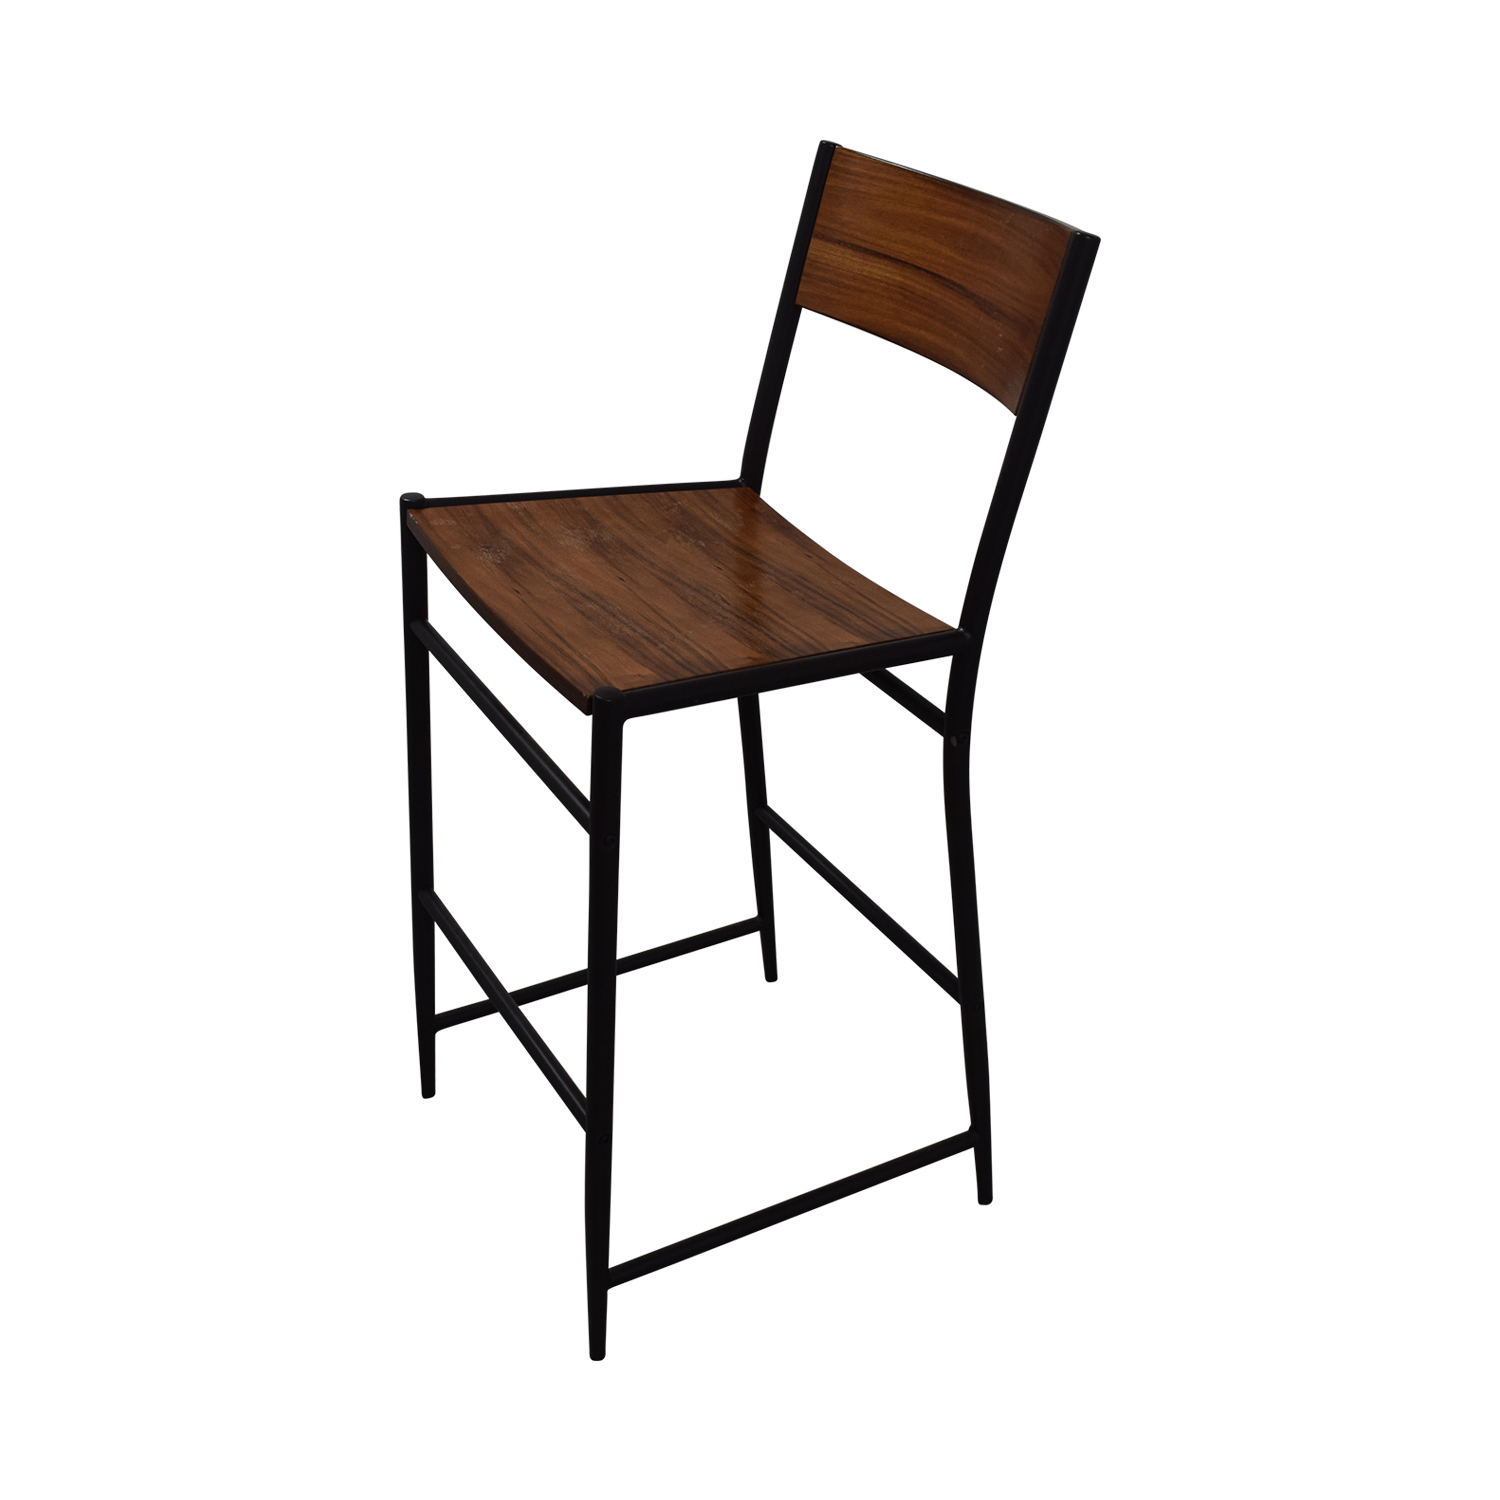 Counter Stools West Elm: West Elm West Elm Rustic Wood Bar Stools / Chairs